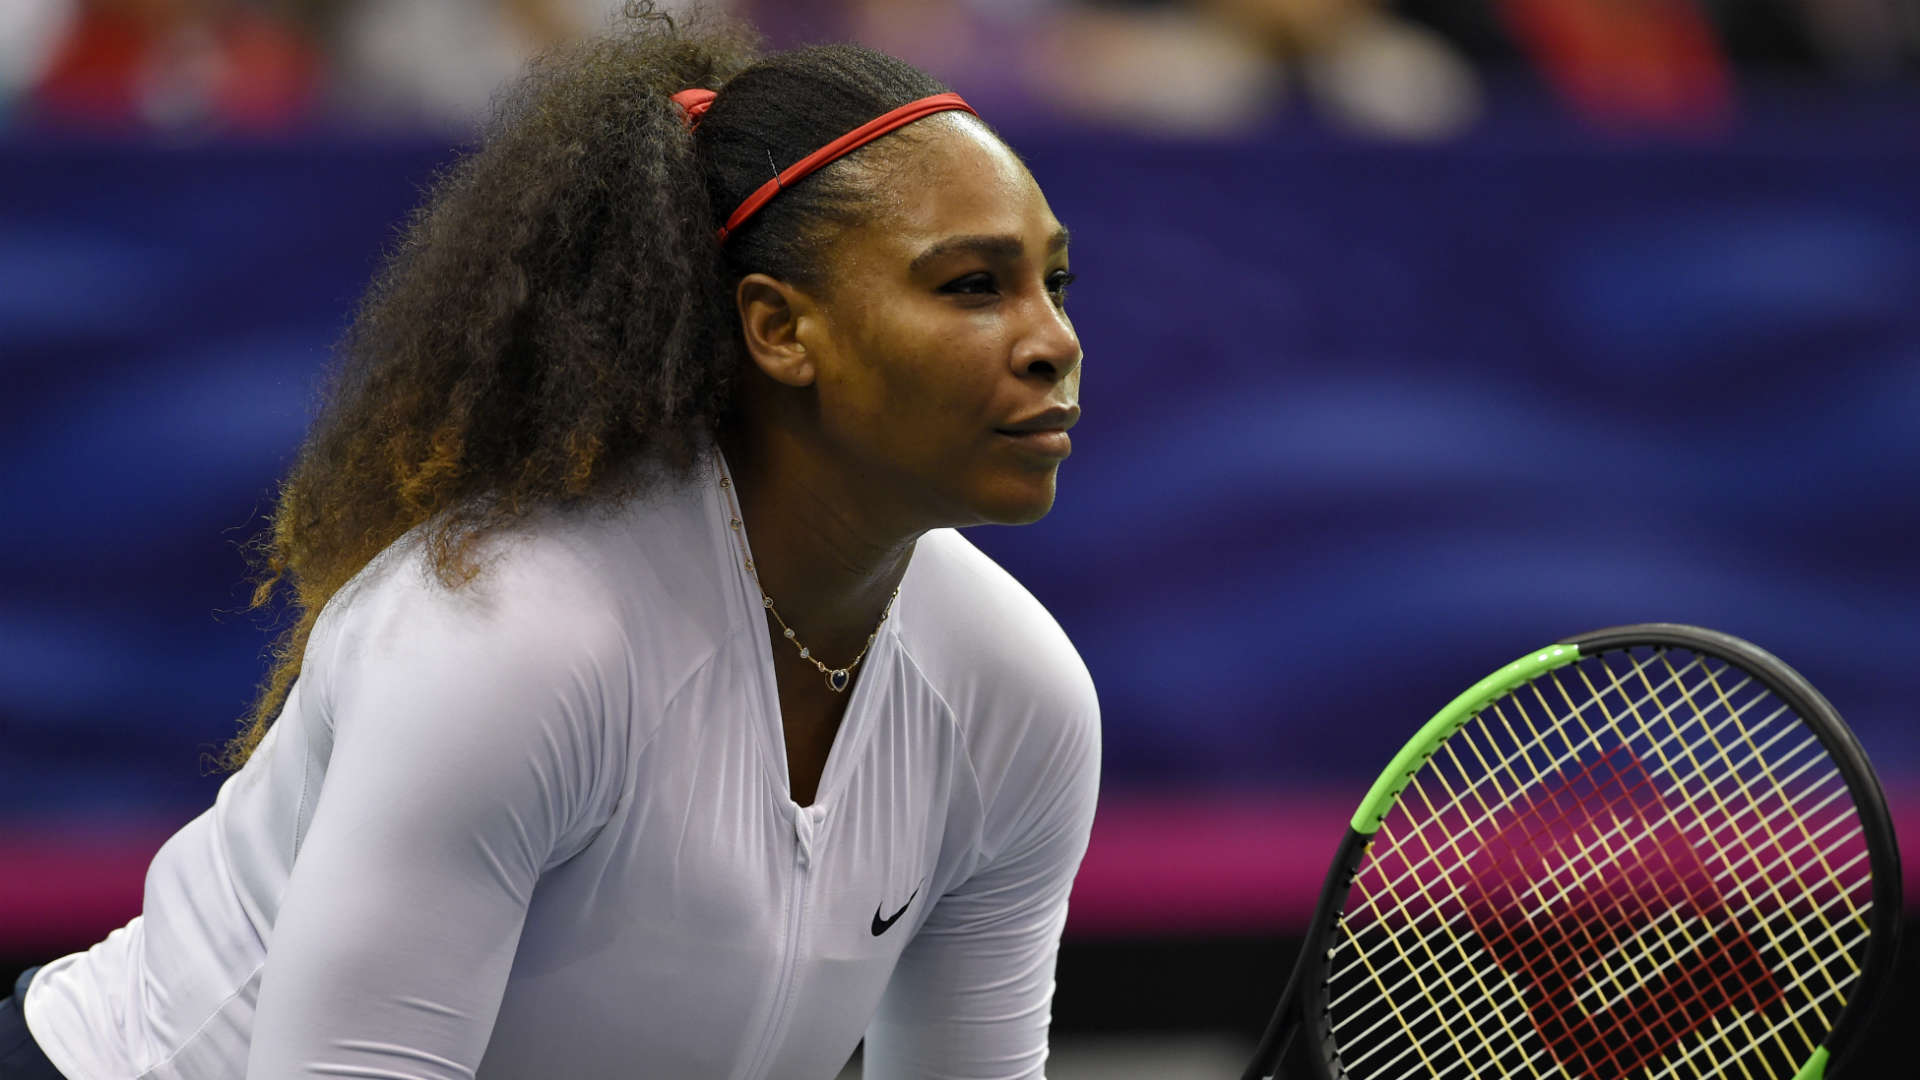 Serena Williams reaches semis in NY  ahead of WTA Tour return